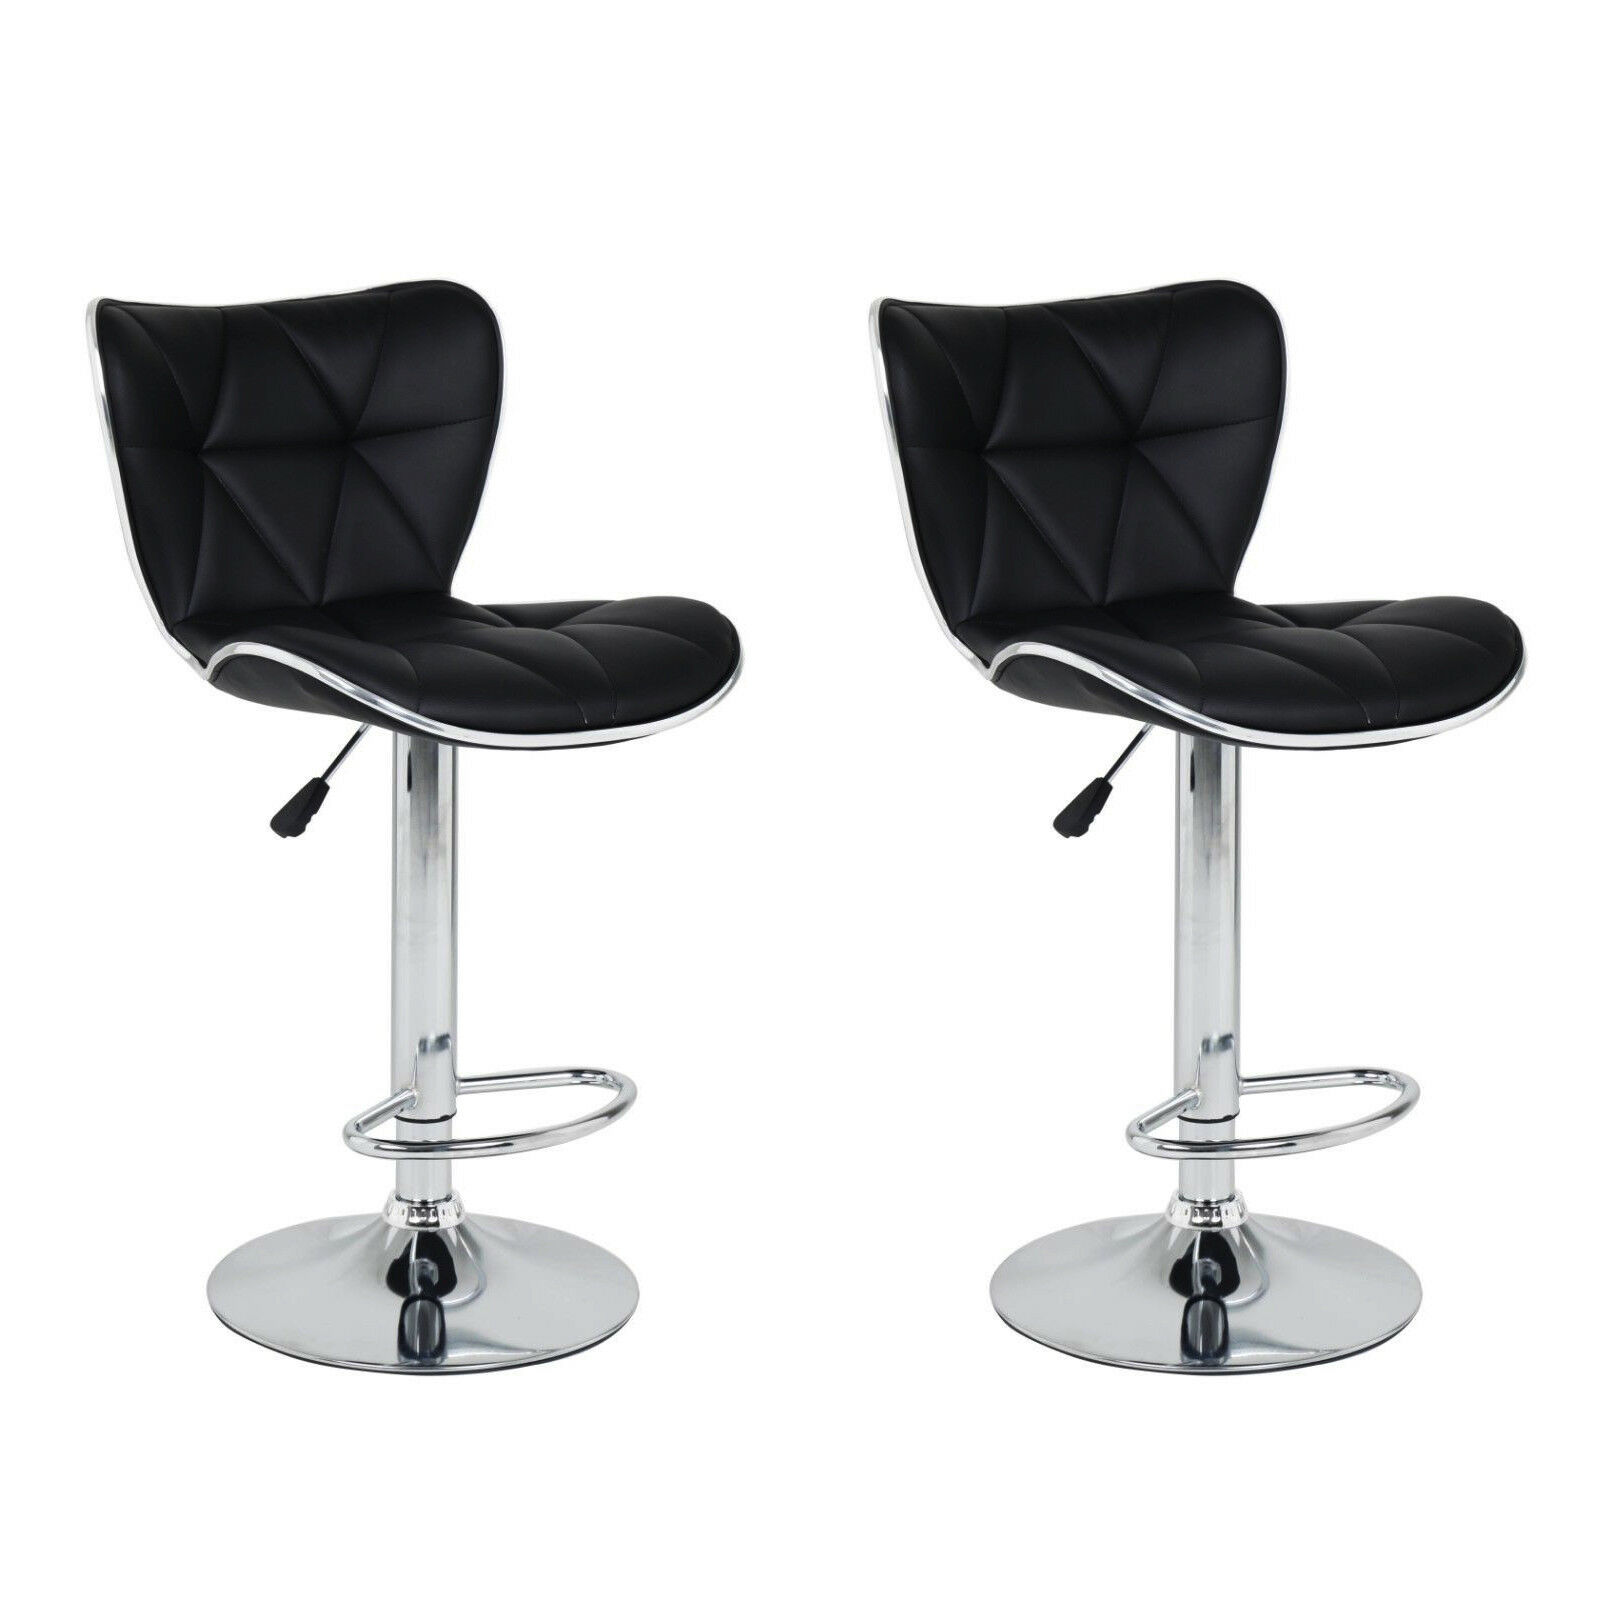 Prime Details About 2X Pair Of Galaxy Bar Stools Faux Leather Barstool Kitchen Stool Breakfast Bar Gamerscity Chair Design For Home Gamerscityorg